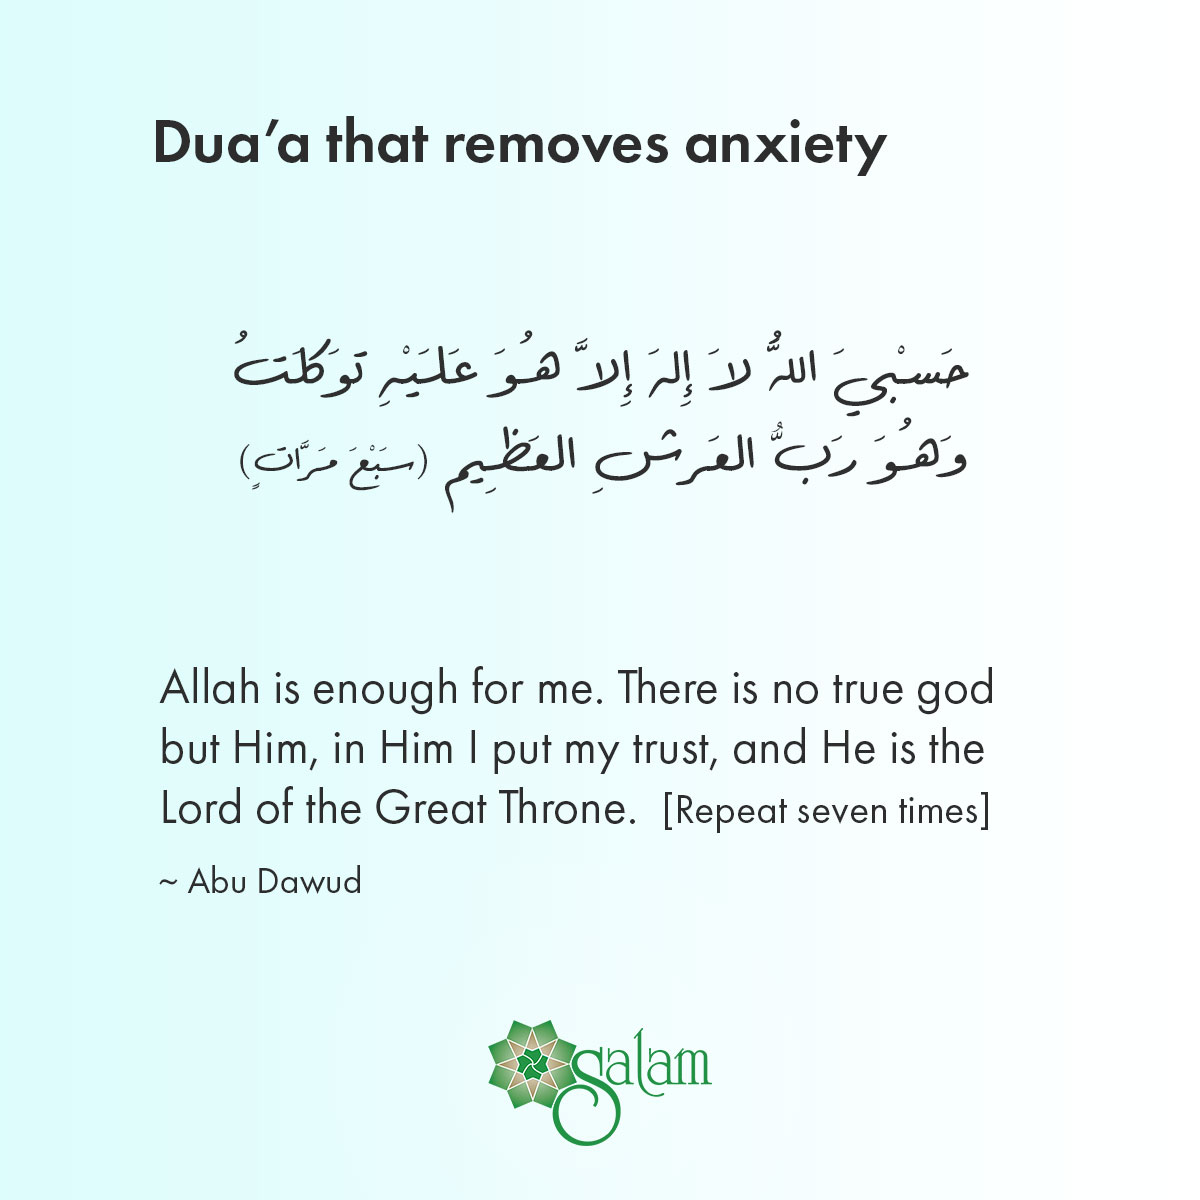 Duaa that removes anxiety